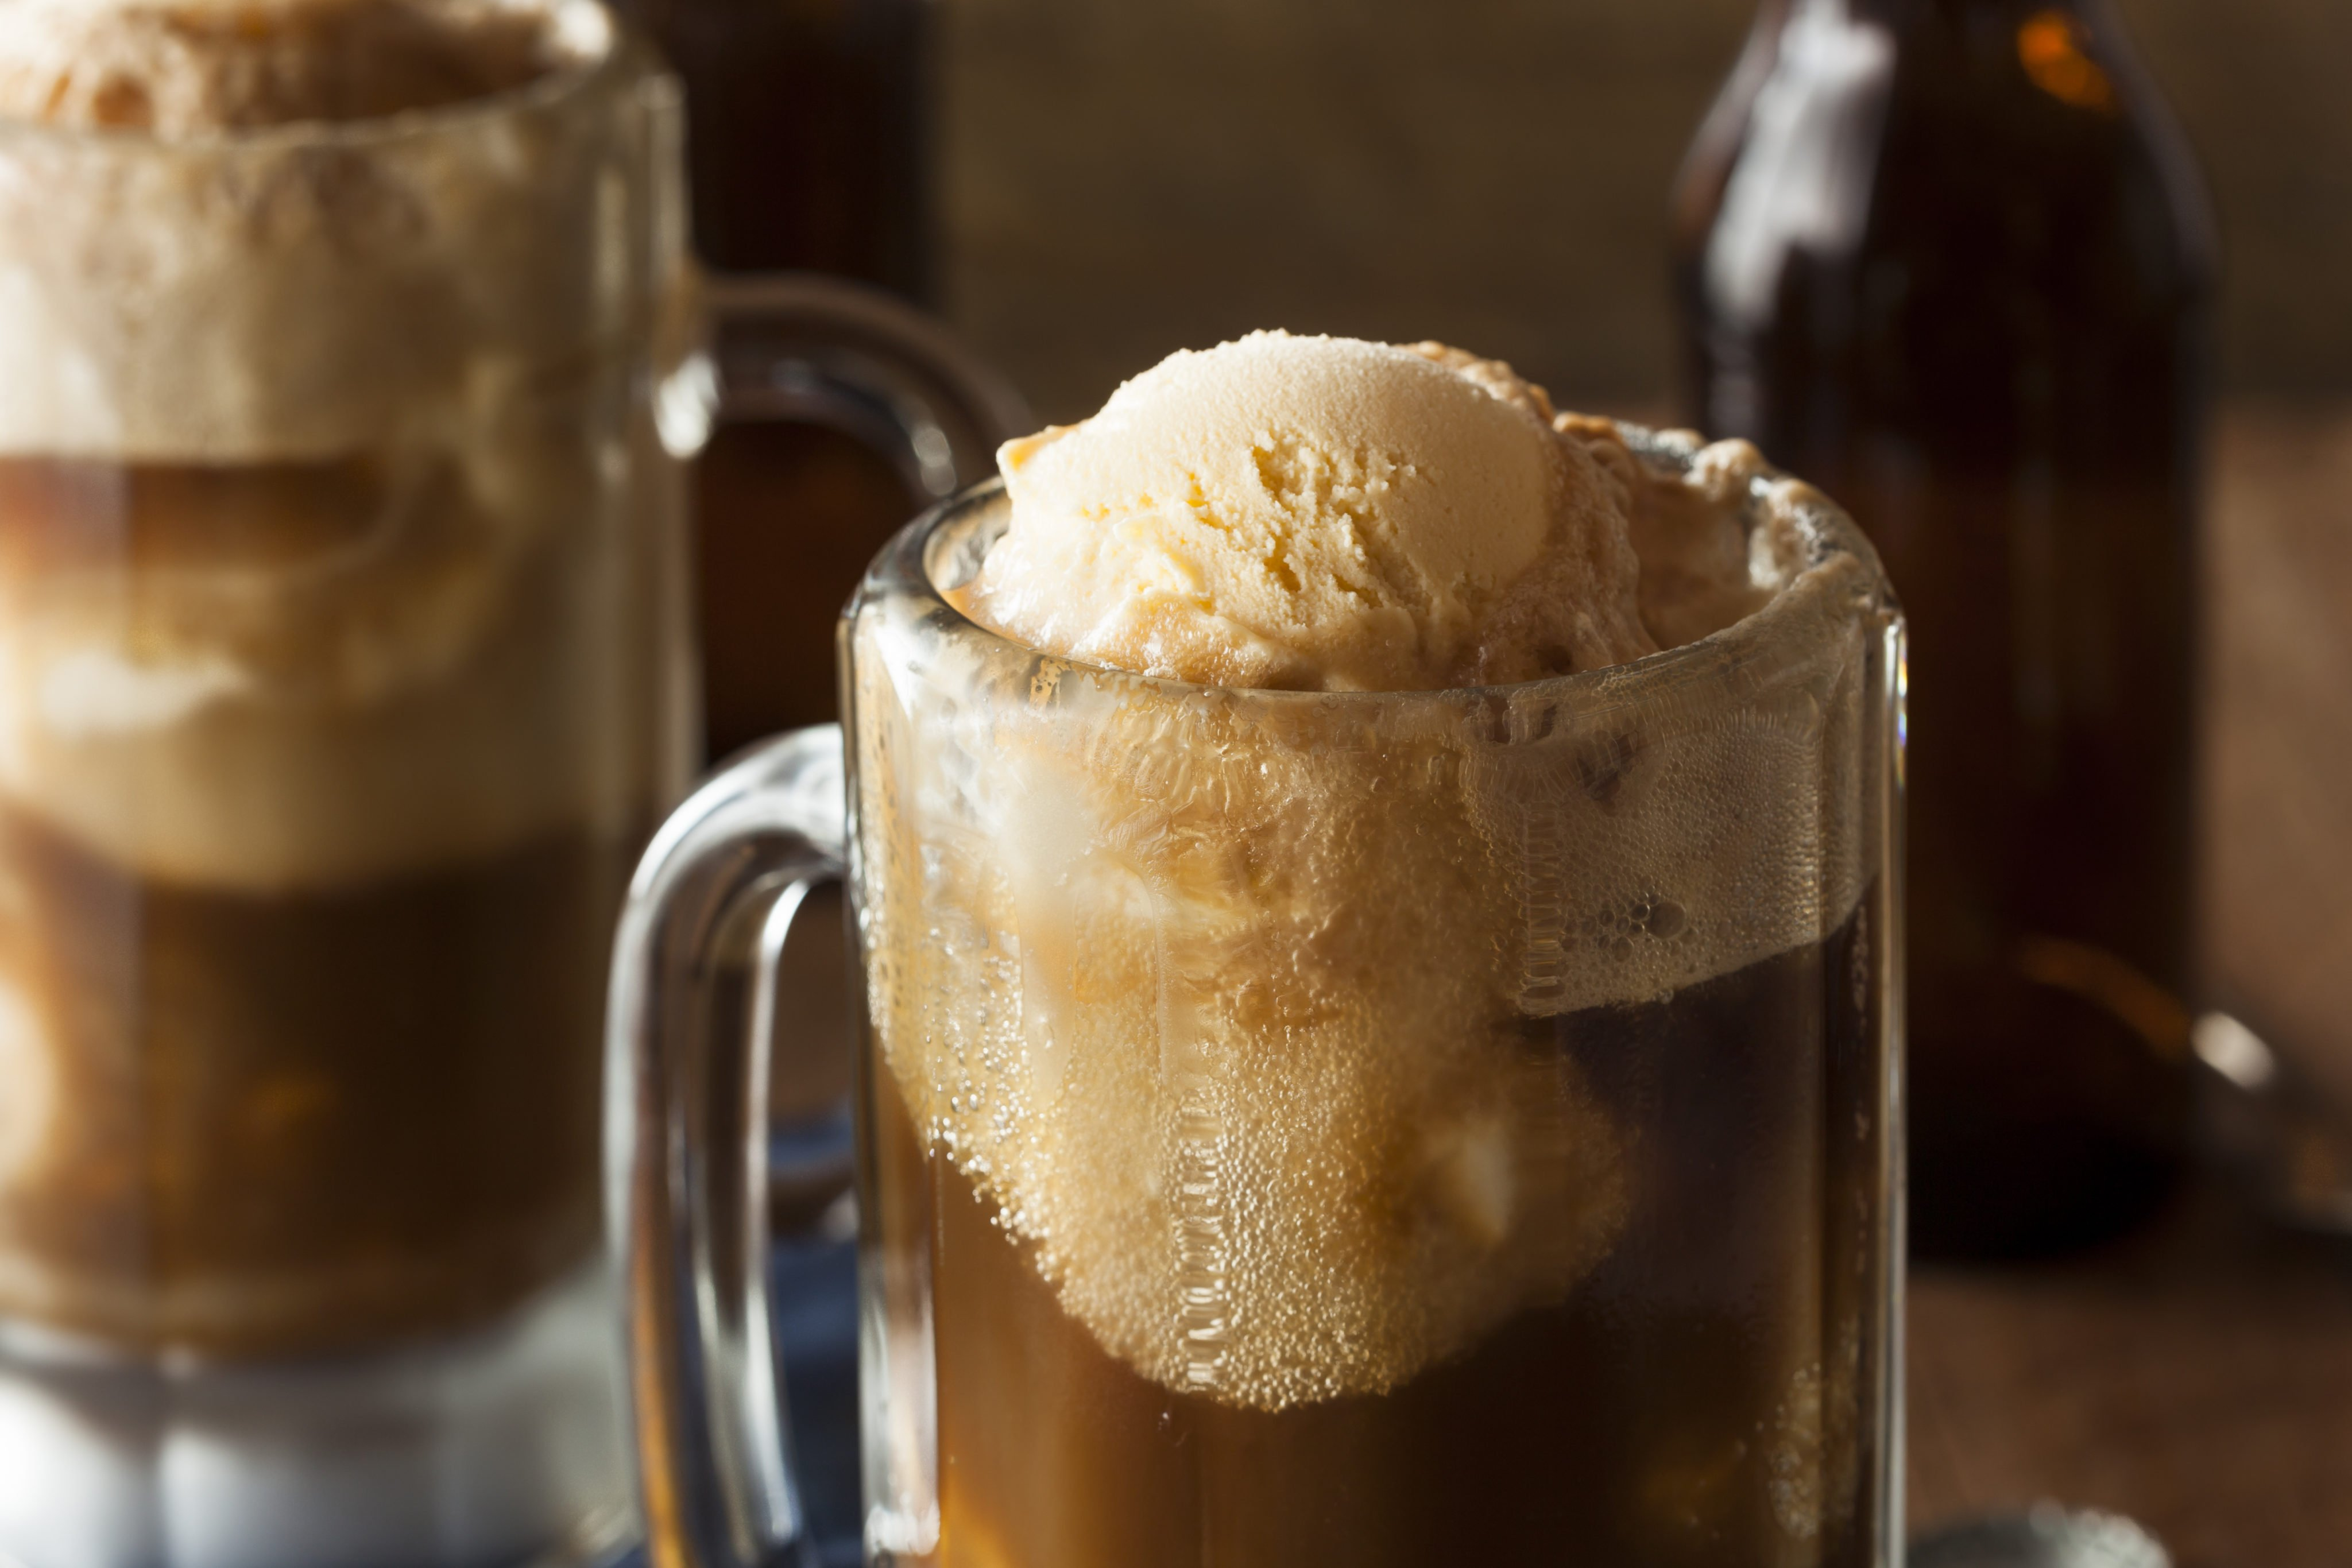 Best Cd Rates >> 3 Restaurants Offering Free Root Beer Floats on Tuesday ...